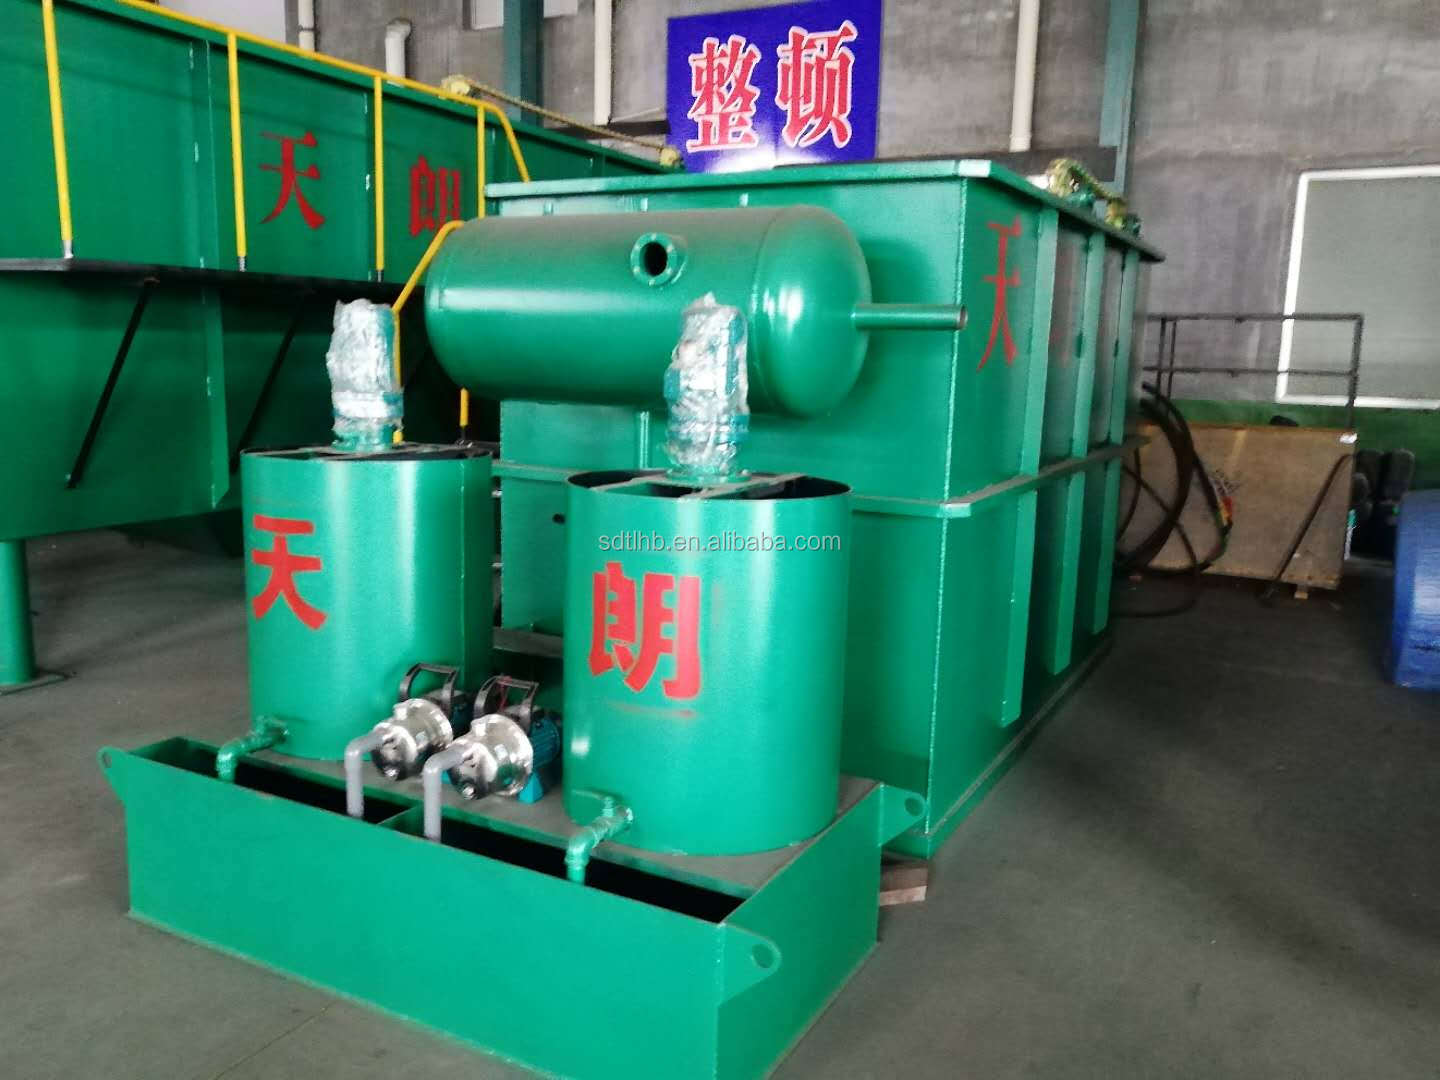 DAF sewage treatment device for meat processing waste water treatment